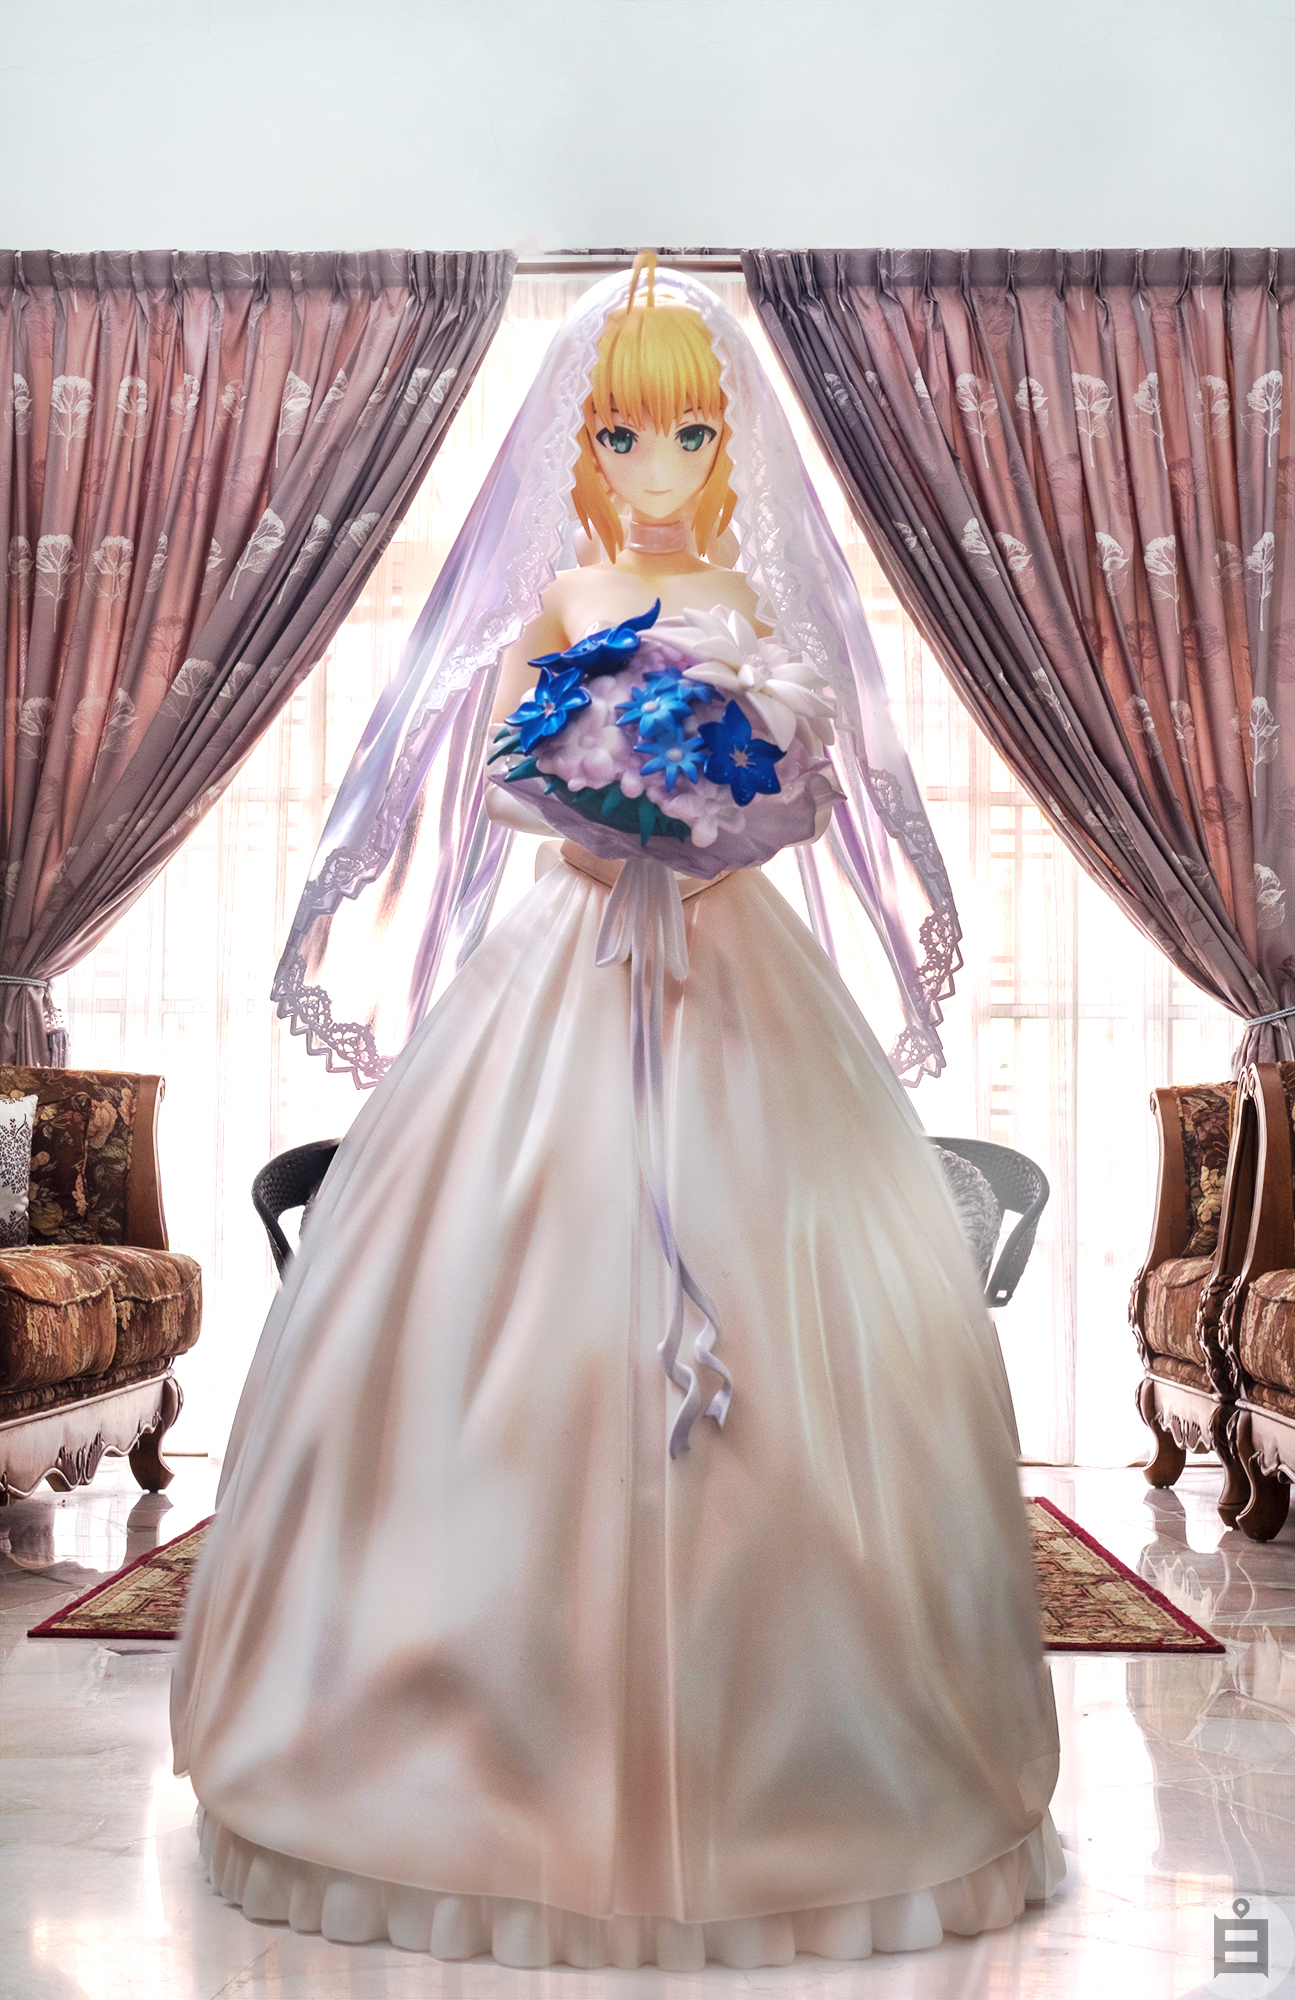 ahoge blond_hair dress bow bride choker bouquet saber type_moon fate/stay_night shiro 1/7 based_on_artwork braided_hair hiroshi_(sakurazensen) aniplex ufotable bare_shoulders type_moon_-10th_anniversary- stronger c87 fate/s